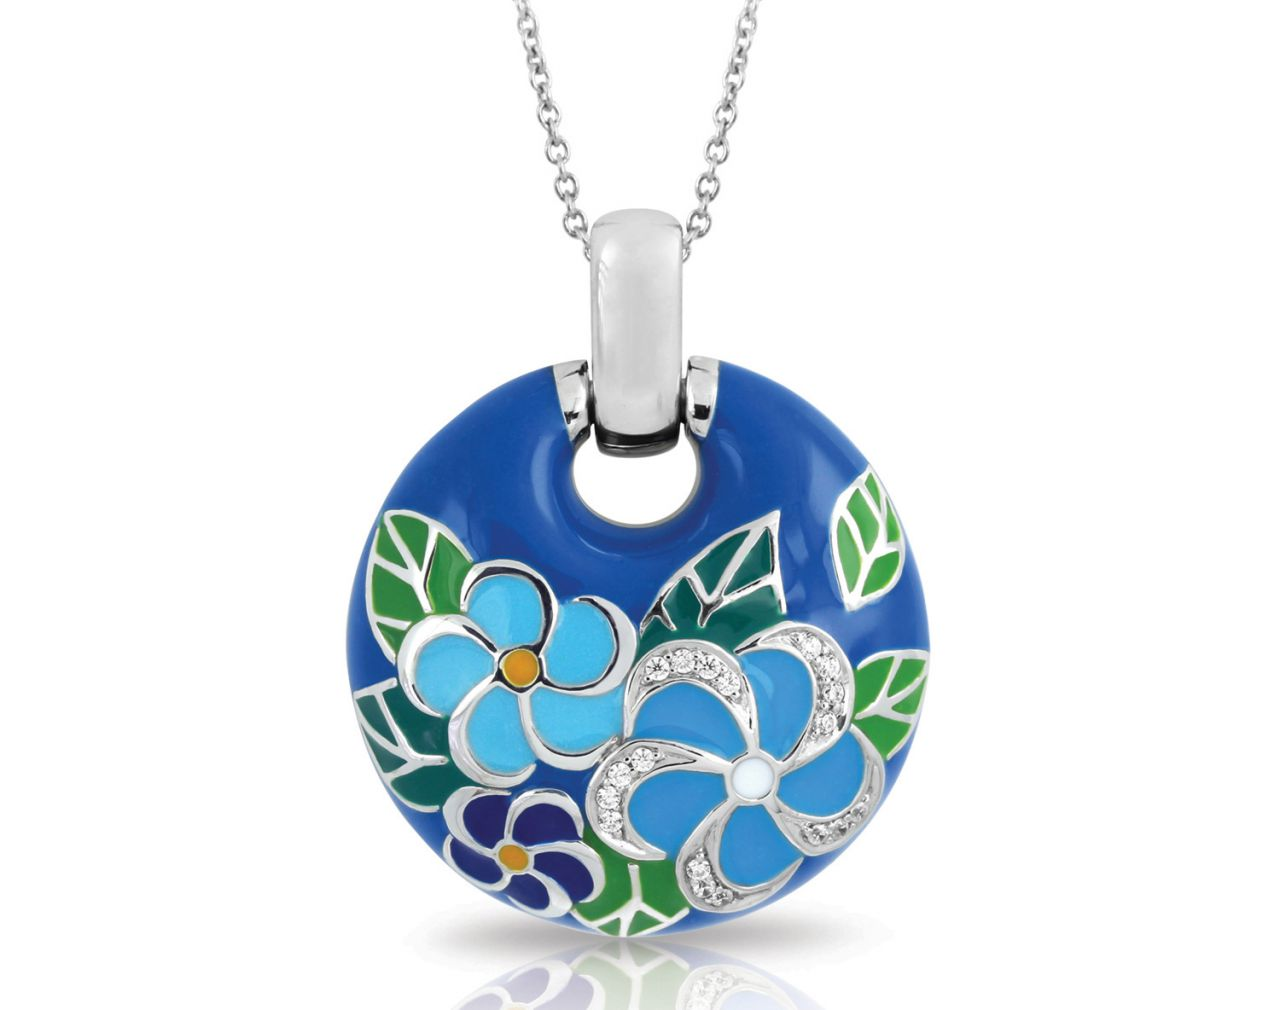 Belle Etoile Melia collection blue circle pendant